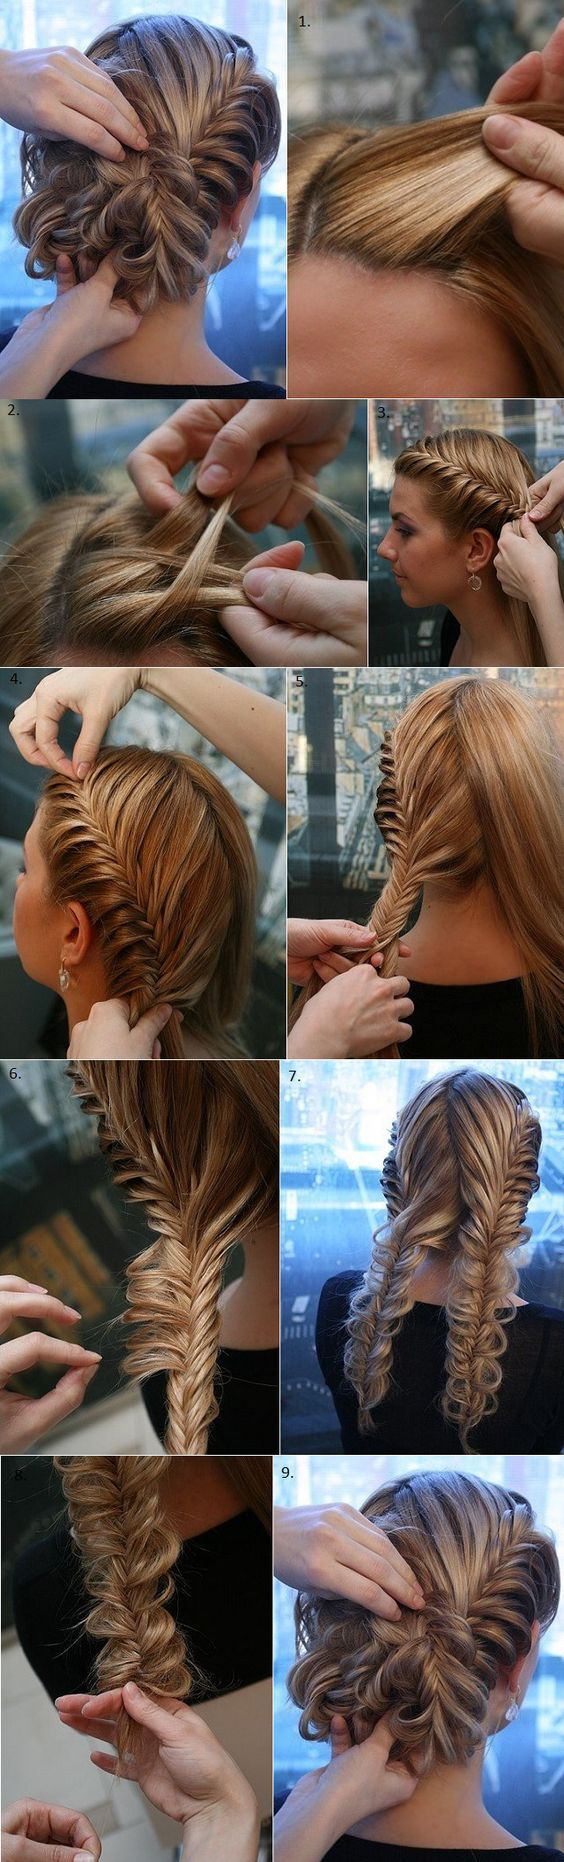 hairstyles you can make in less than mins couples school and